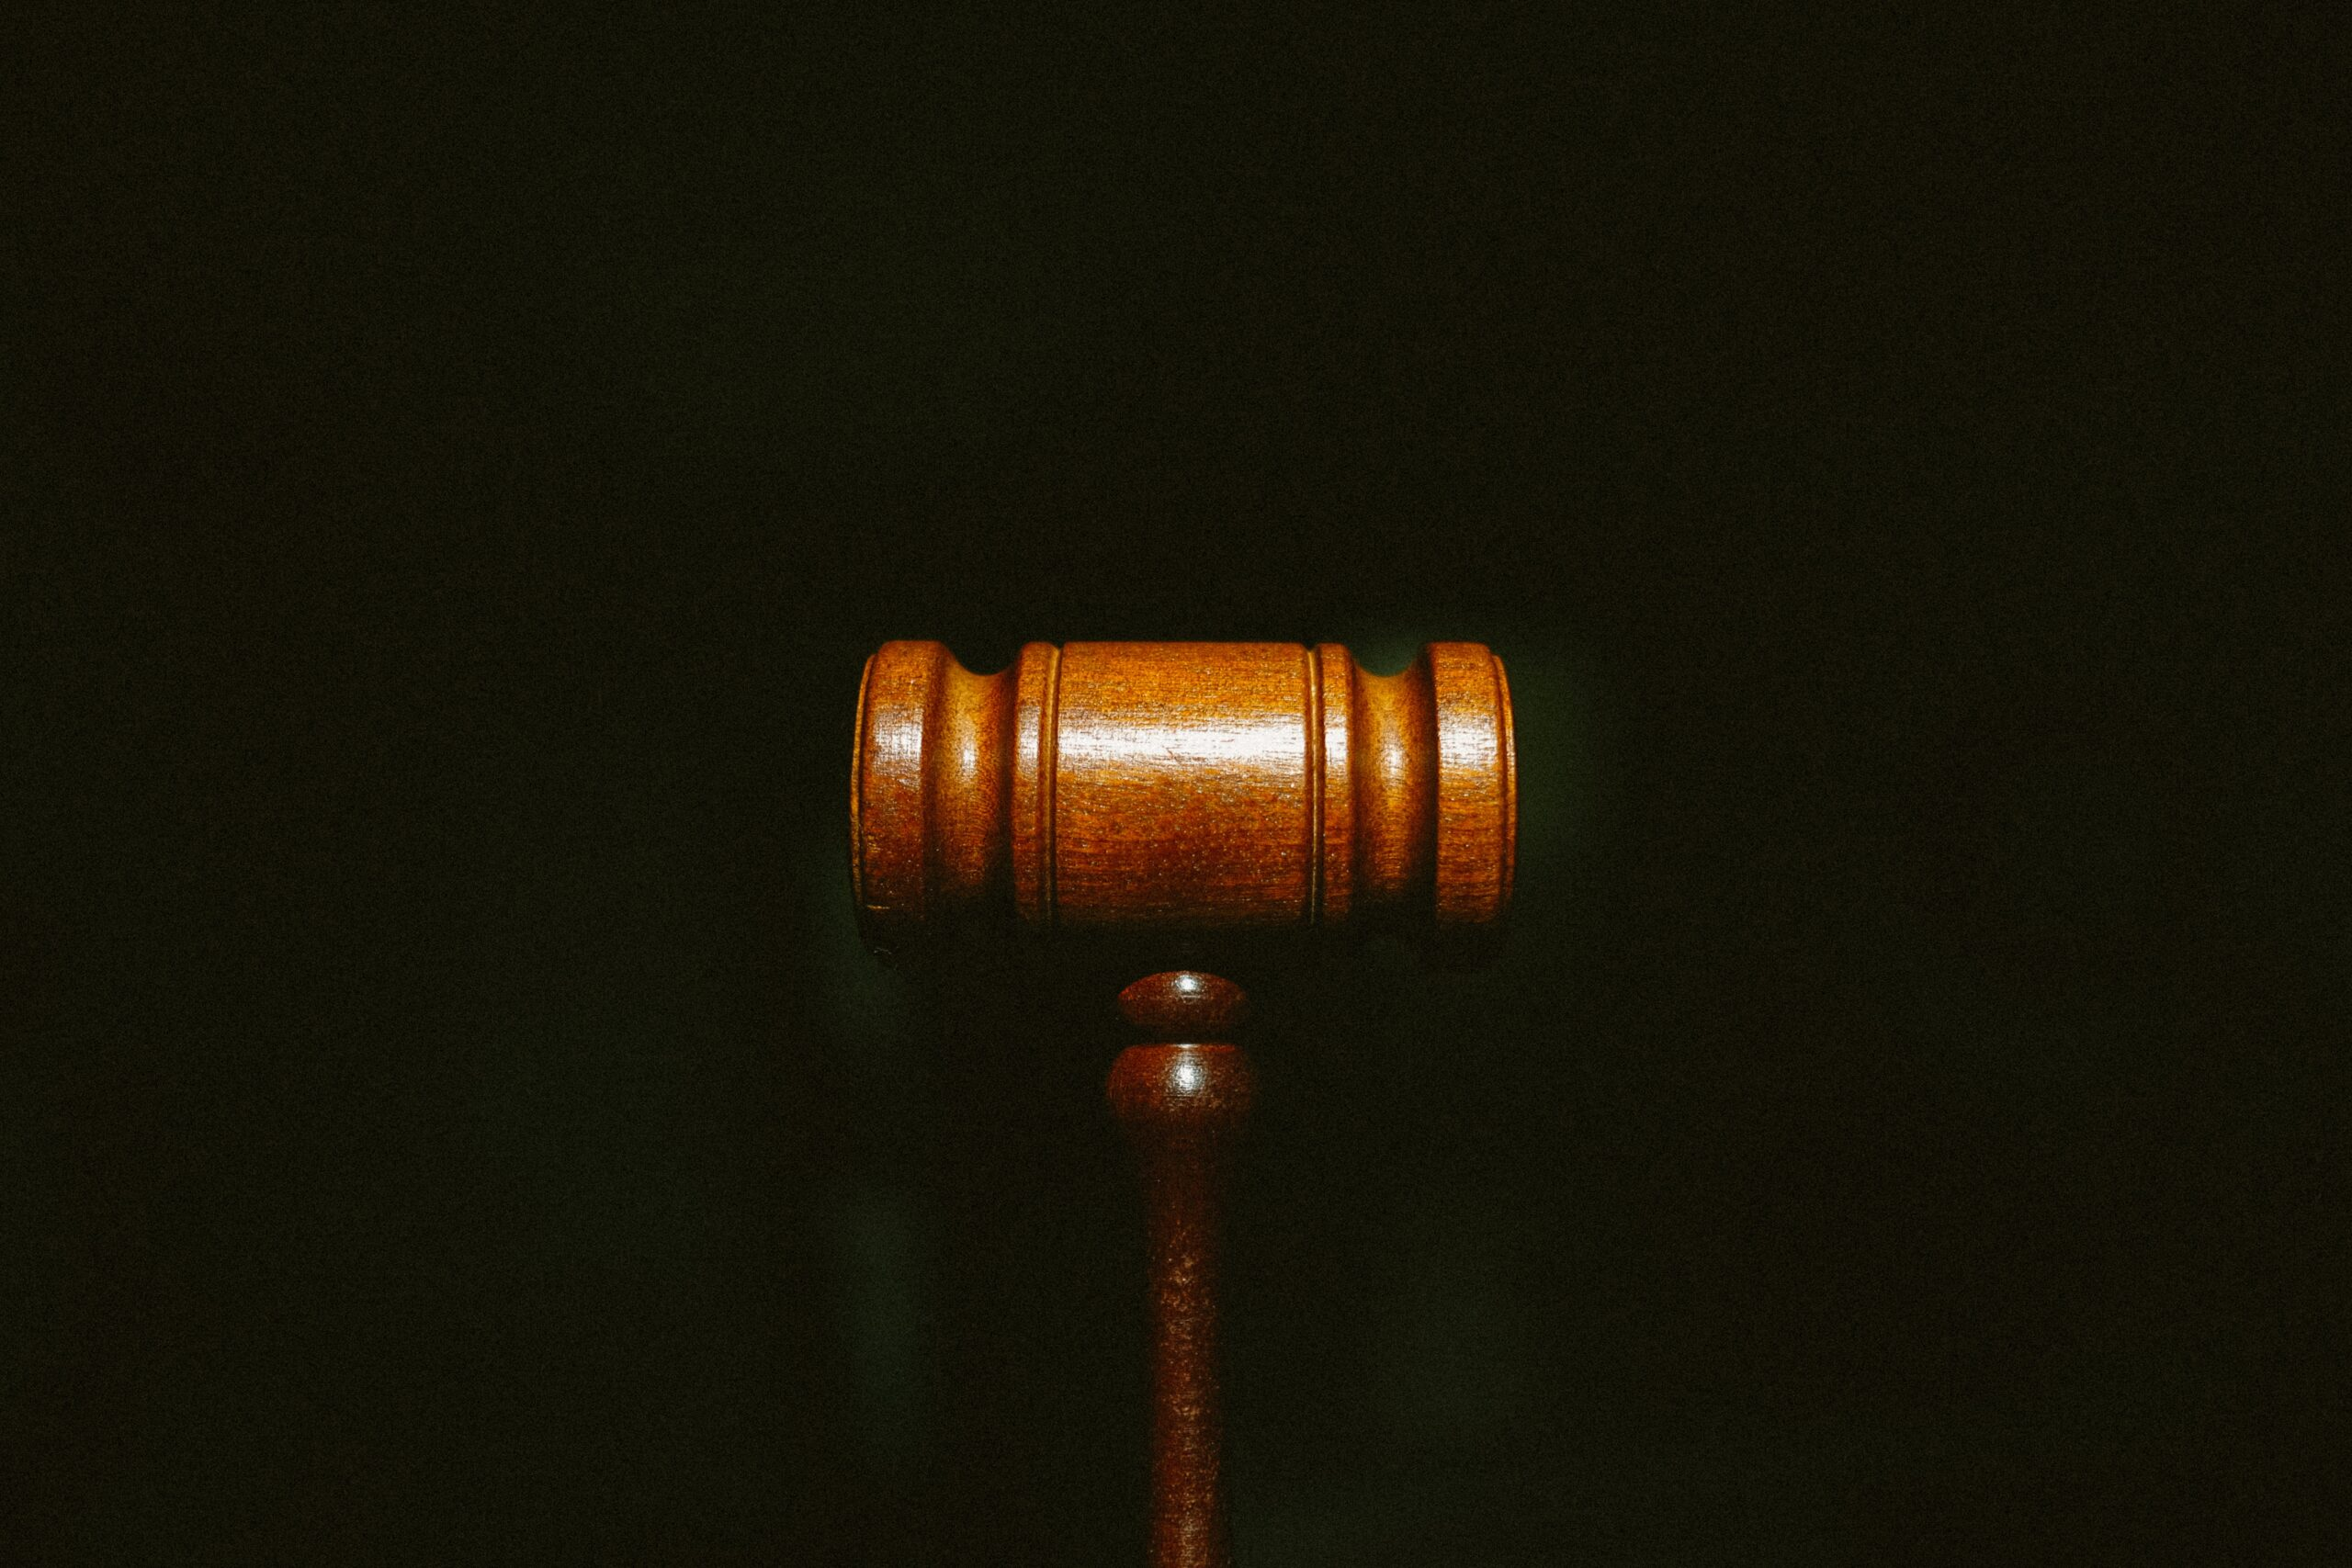 tingey injury law firm nSpj Z12lX0 unsplash scaled - Are You Looking for a Lawyer for Child Custody?